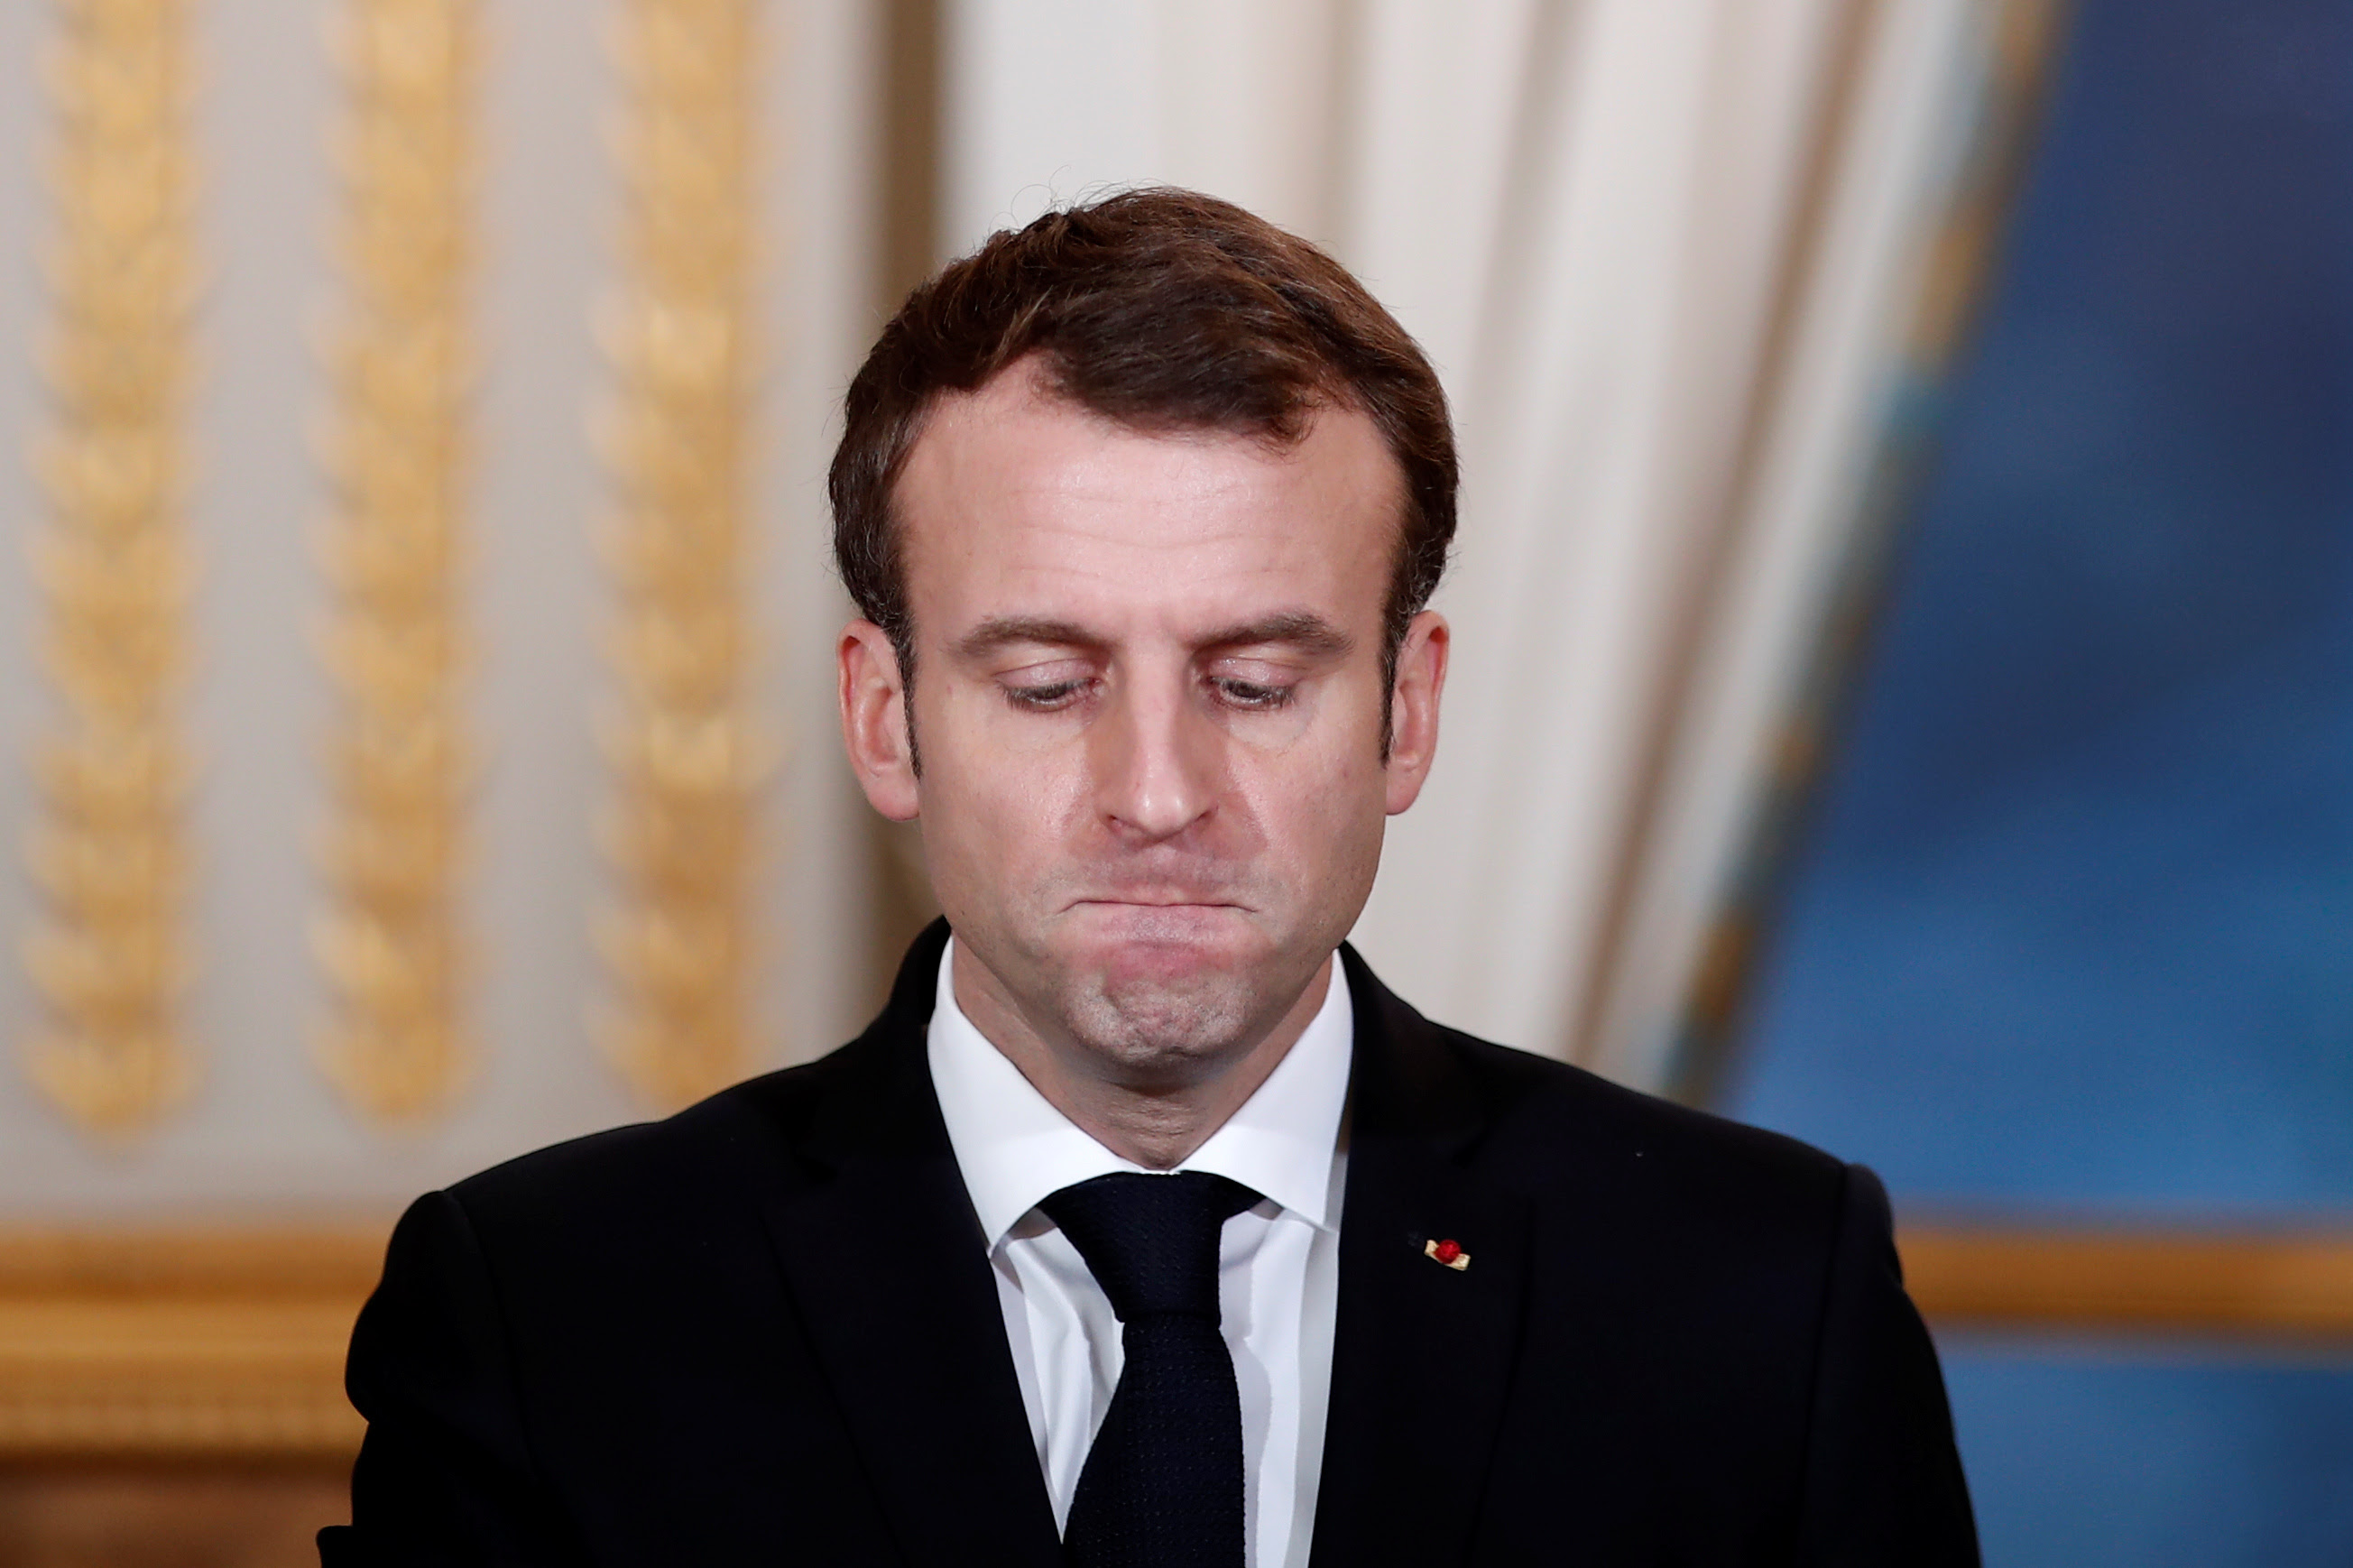 French President Emmanuel Macron attends a joint news conference with President of Burkina Faso Roch Marc Christian Kabore at the Elysee Palace in Paris